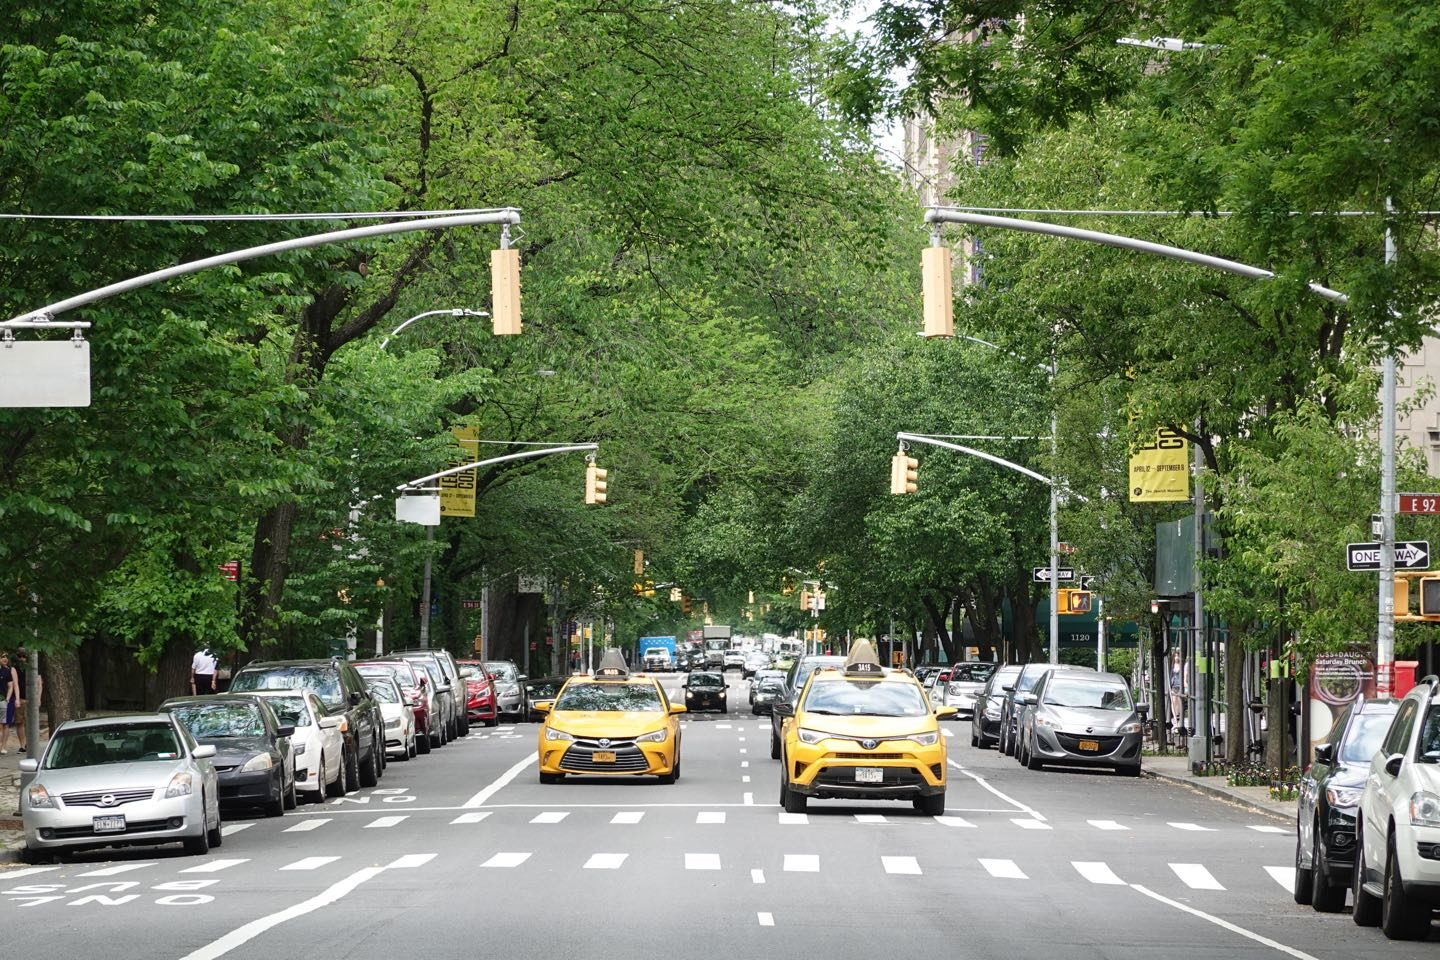 Best walks on NYC. The 5th Avenue next to the Central Park.